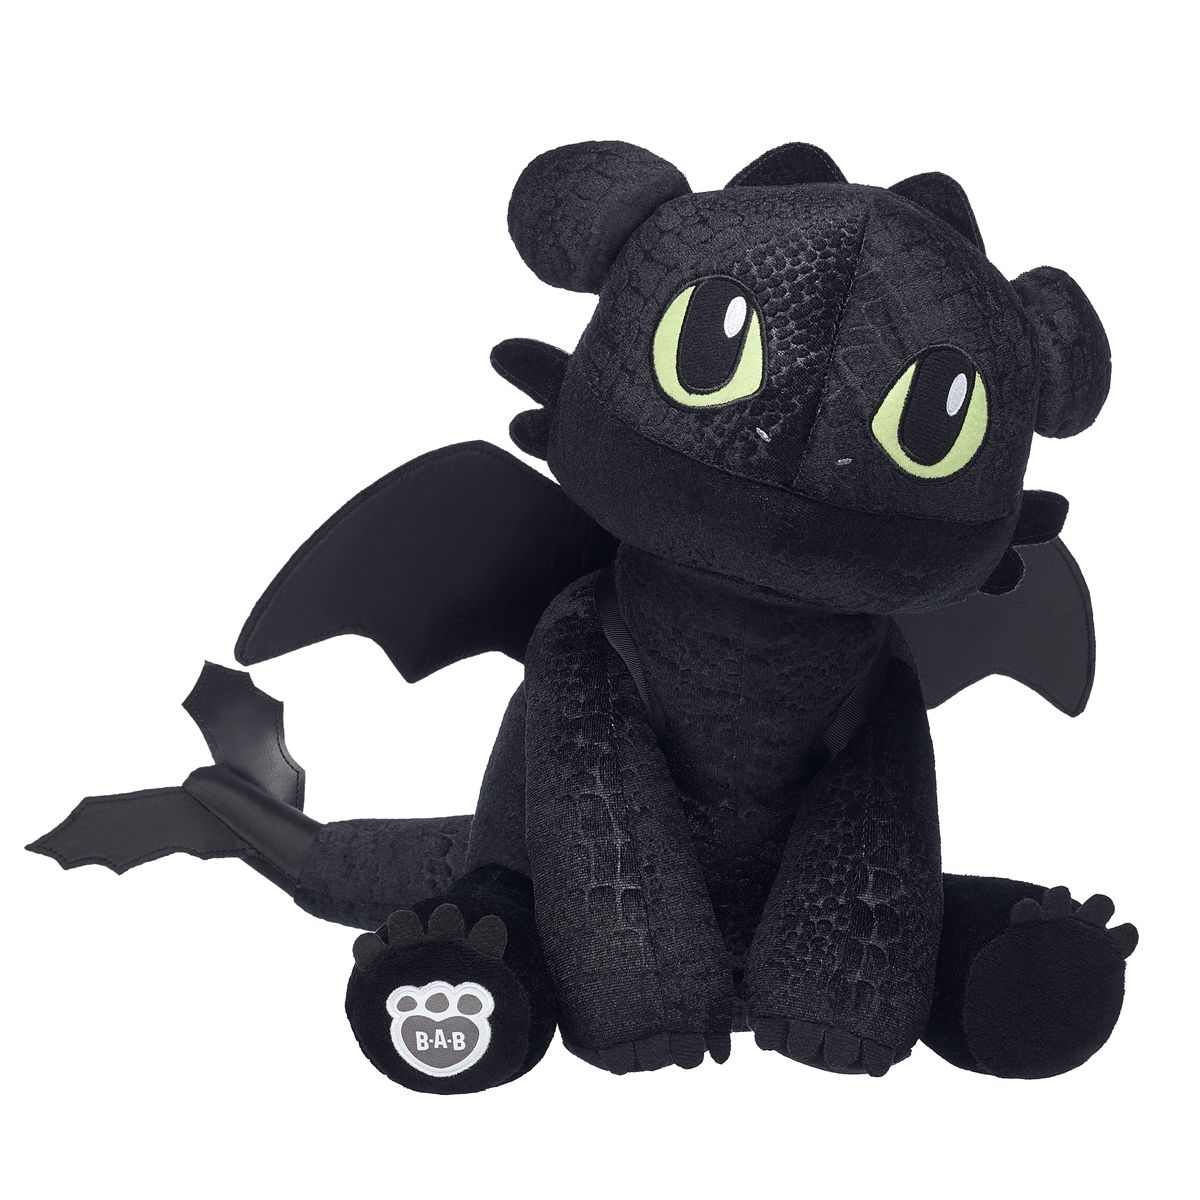 845ae88f66d black toothless dragon stuffed animal from How to Train Your Dragon  The  Hidden World. Toothless